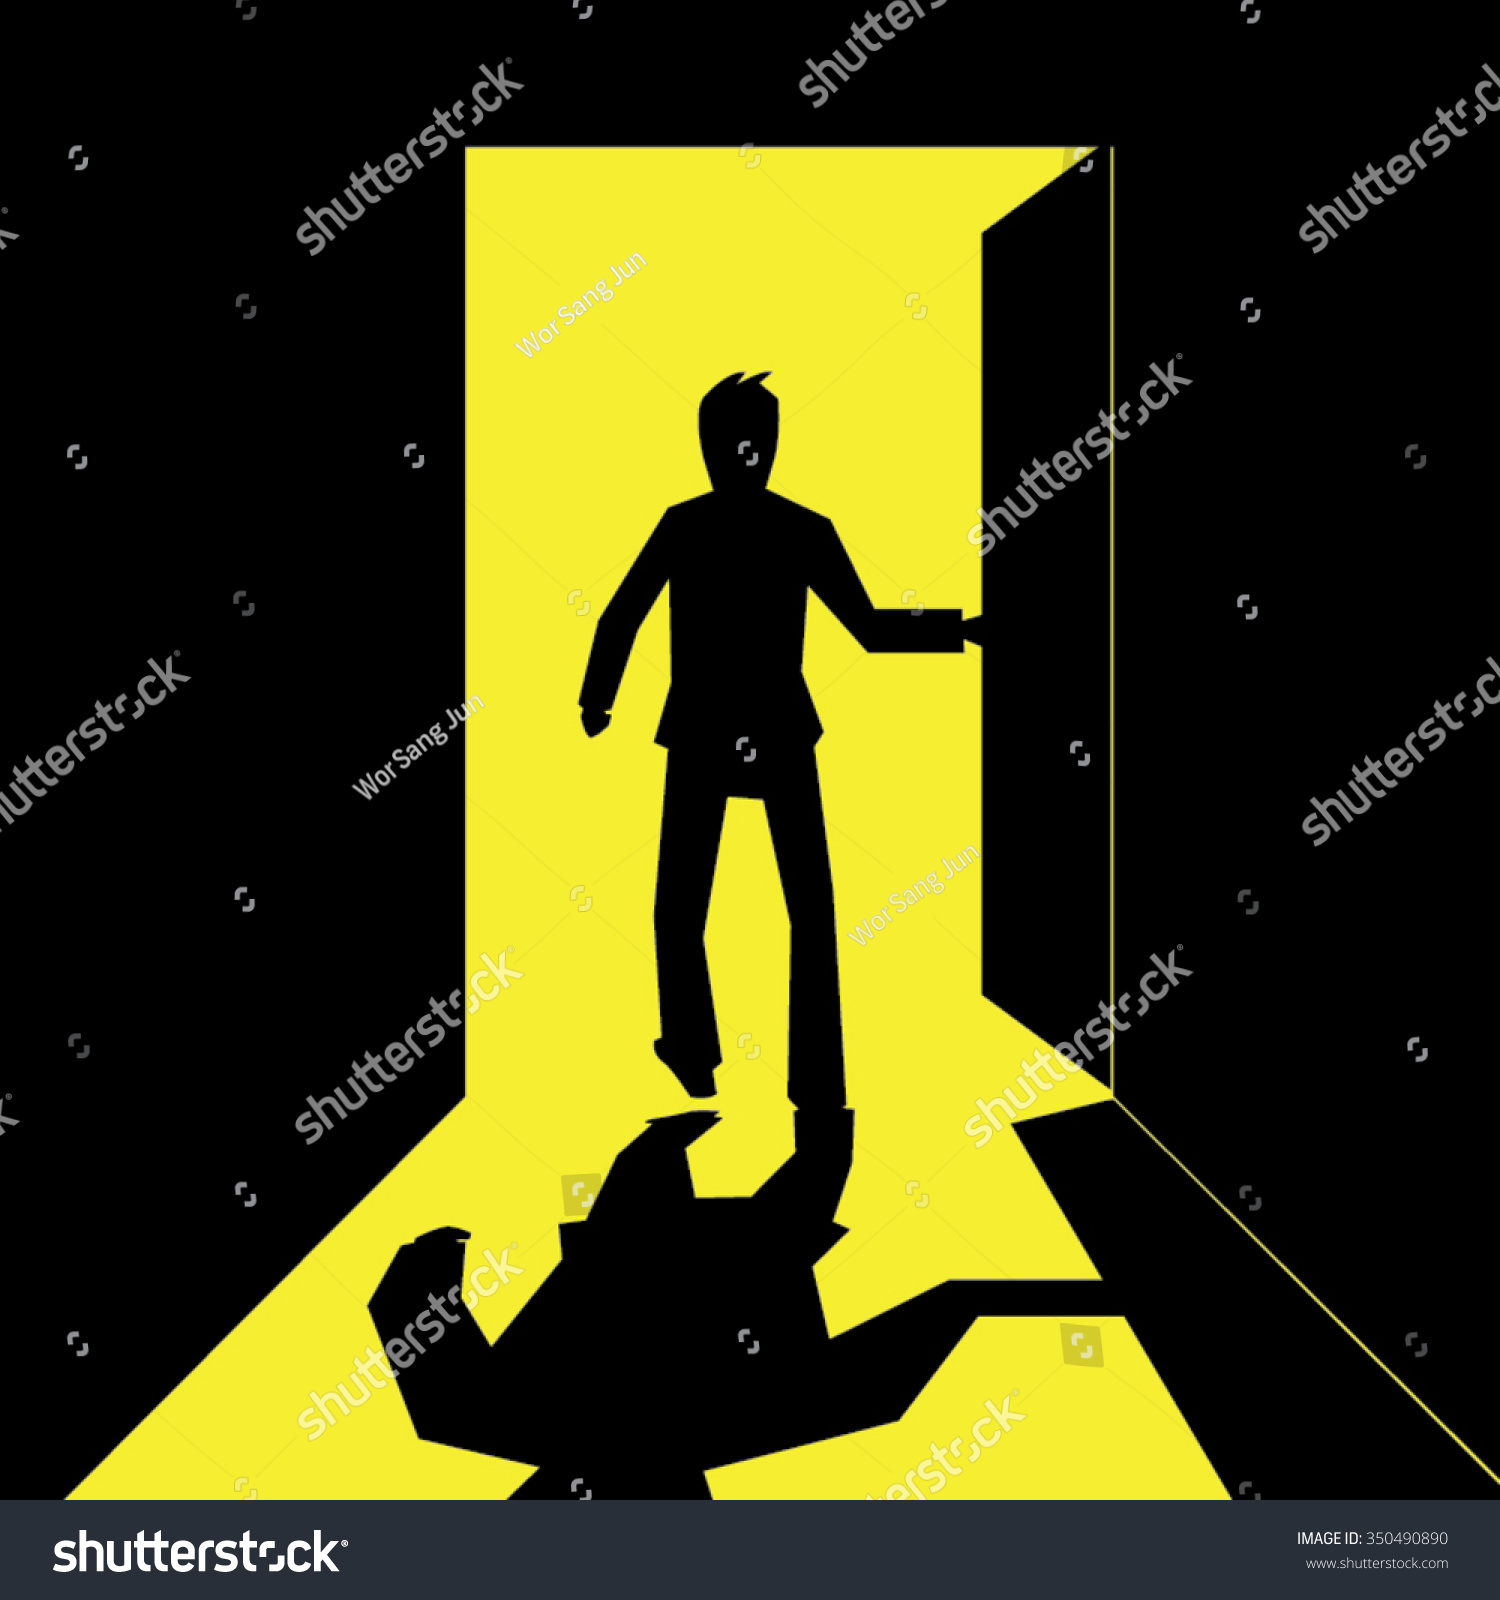 Silhouette Of A Business Man Open And Walking Out The Door